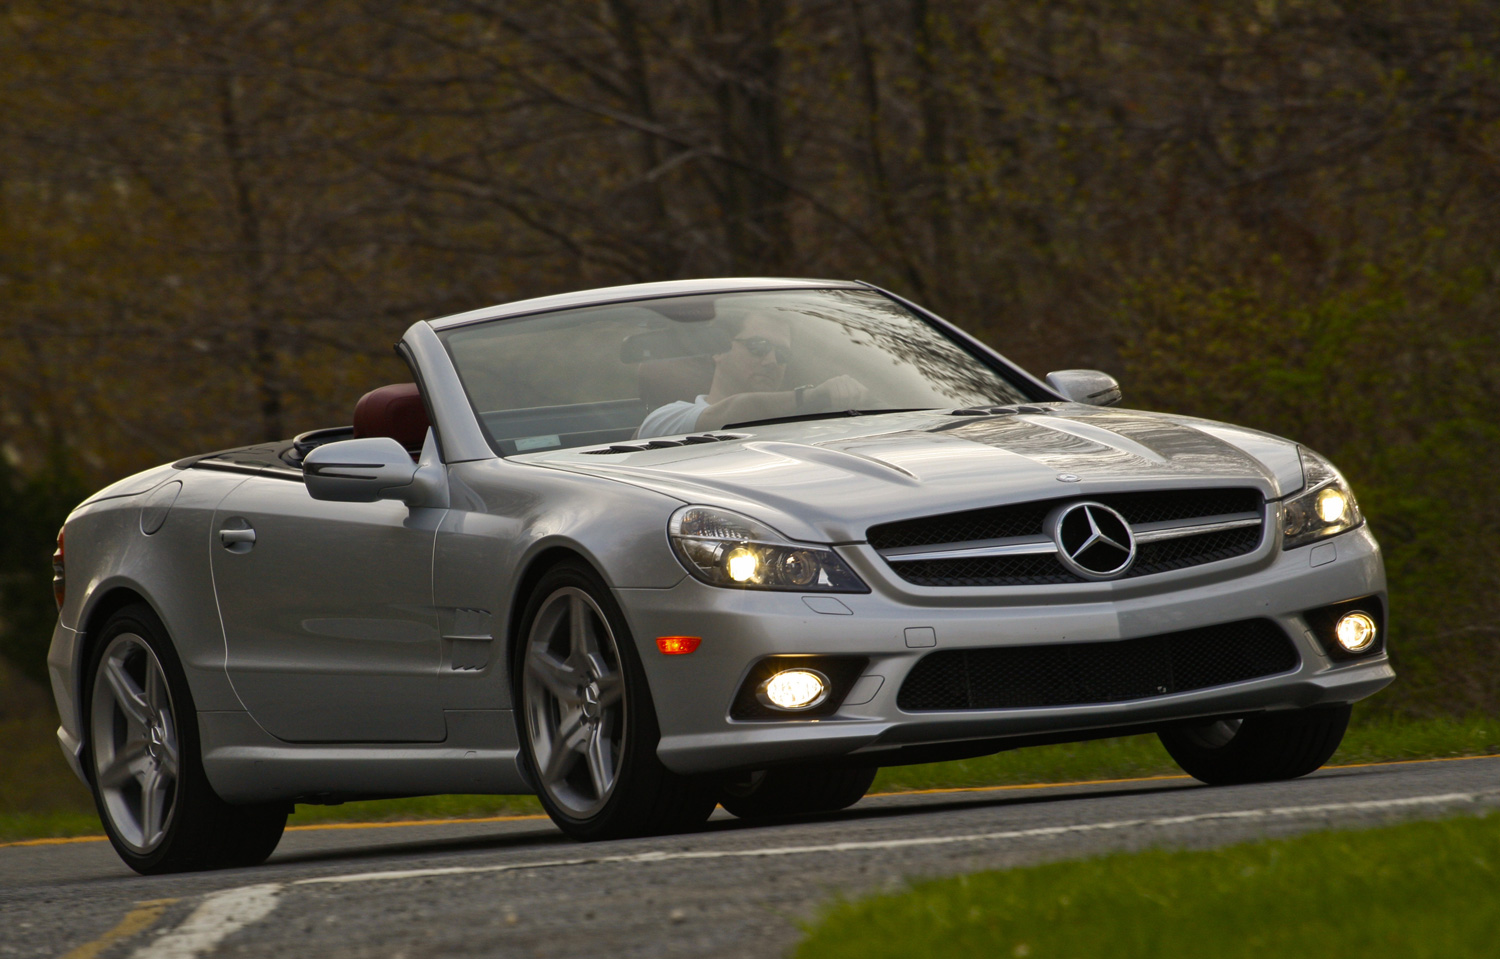 Mercedes-Benz SL550 Silver Arrow